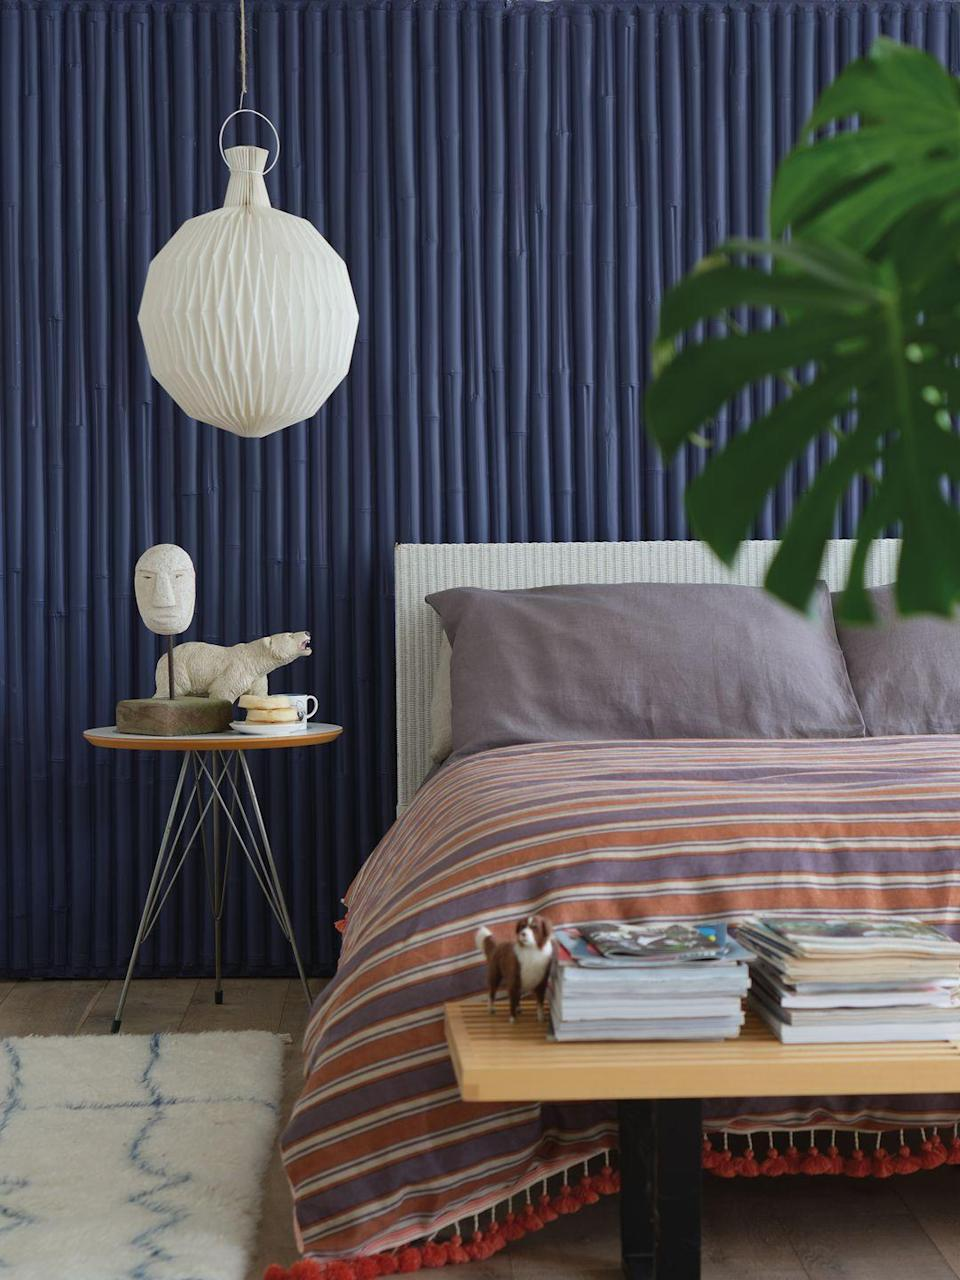 "<p><strong>An easy way to create an Instagrammable bedroom is by adding a touch of paint to your room. A standout colour, such as dark navy, olive green or burnt red, will ooze character and style. </strong></p><p>A great way to make a statement is to opt for energetic colours. Whether you choose <a href=""https://www.housebeautiful.com/uk/decorate/looks/g26354209/pantone-colour-autumn-winter/"" rel=""nofollow noopener"" target=""_blank"" data-ylk=""slk:Pantone"" class=""link rapid-noclick-resp"">Pantone</a>-approved hues or <a href=""https://www.housebeautiful.com/uk/decorate/a25747701/farrow-and-ball-colours-2019/"" rel=""nofollow noopener"" target=""_blank"" data-ylk=""slk:Farrow & Ball"" class=""link rapid-noclick-resp"">Farrow & Ball</a>'s top wall colours of the year, you can be certain to have an Instagram grid interior enthusiasts will lust over. </p><p>'Deep Imperial Purple, for example, transforms intimate spaces such as bedrooms, creating a luxurious look and enveloping feel,' Charlotte Crosby, Head of Creative at Farrow & Ball, explains. 'Used in smaller quantities, such as inside a window recess, it can add a rich pocket of colour to even the most neutral of rooms. </p><p>'Don't be afraid by the size of a room. A deep colour such as Ultra Marine Blue will distract the eye from the size and create the perfect backdrop for all bedroom accessories.'</p>"